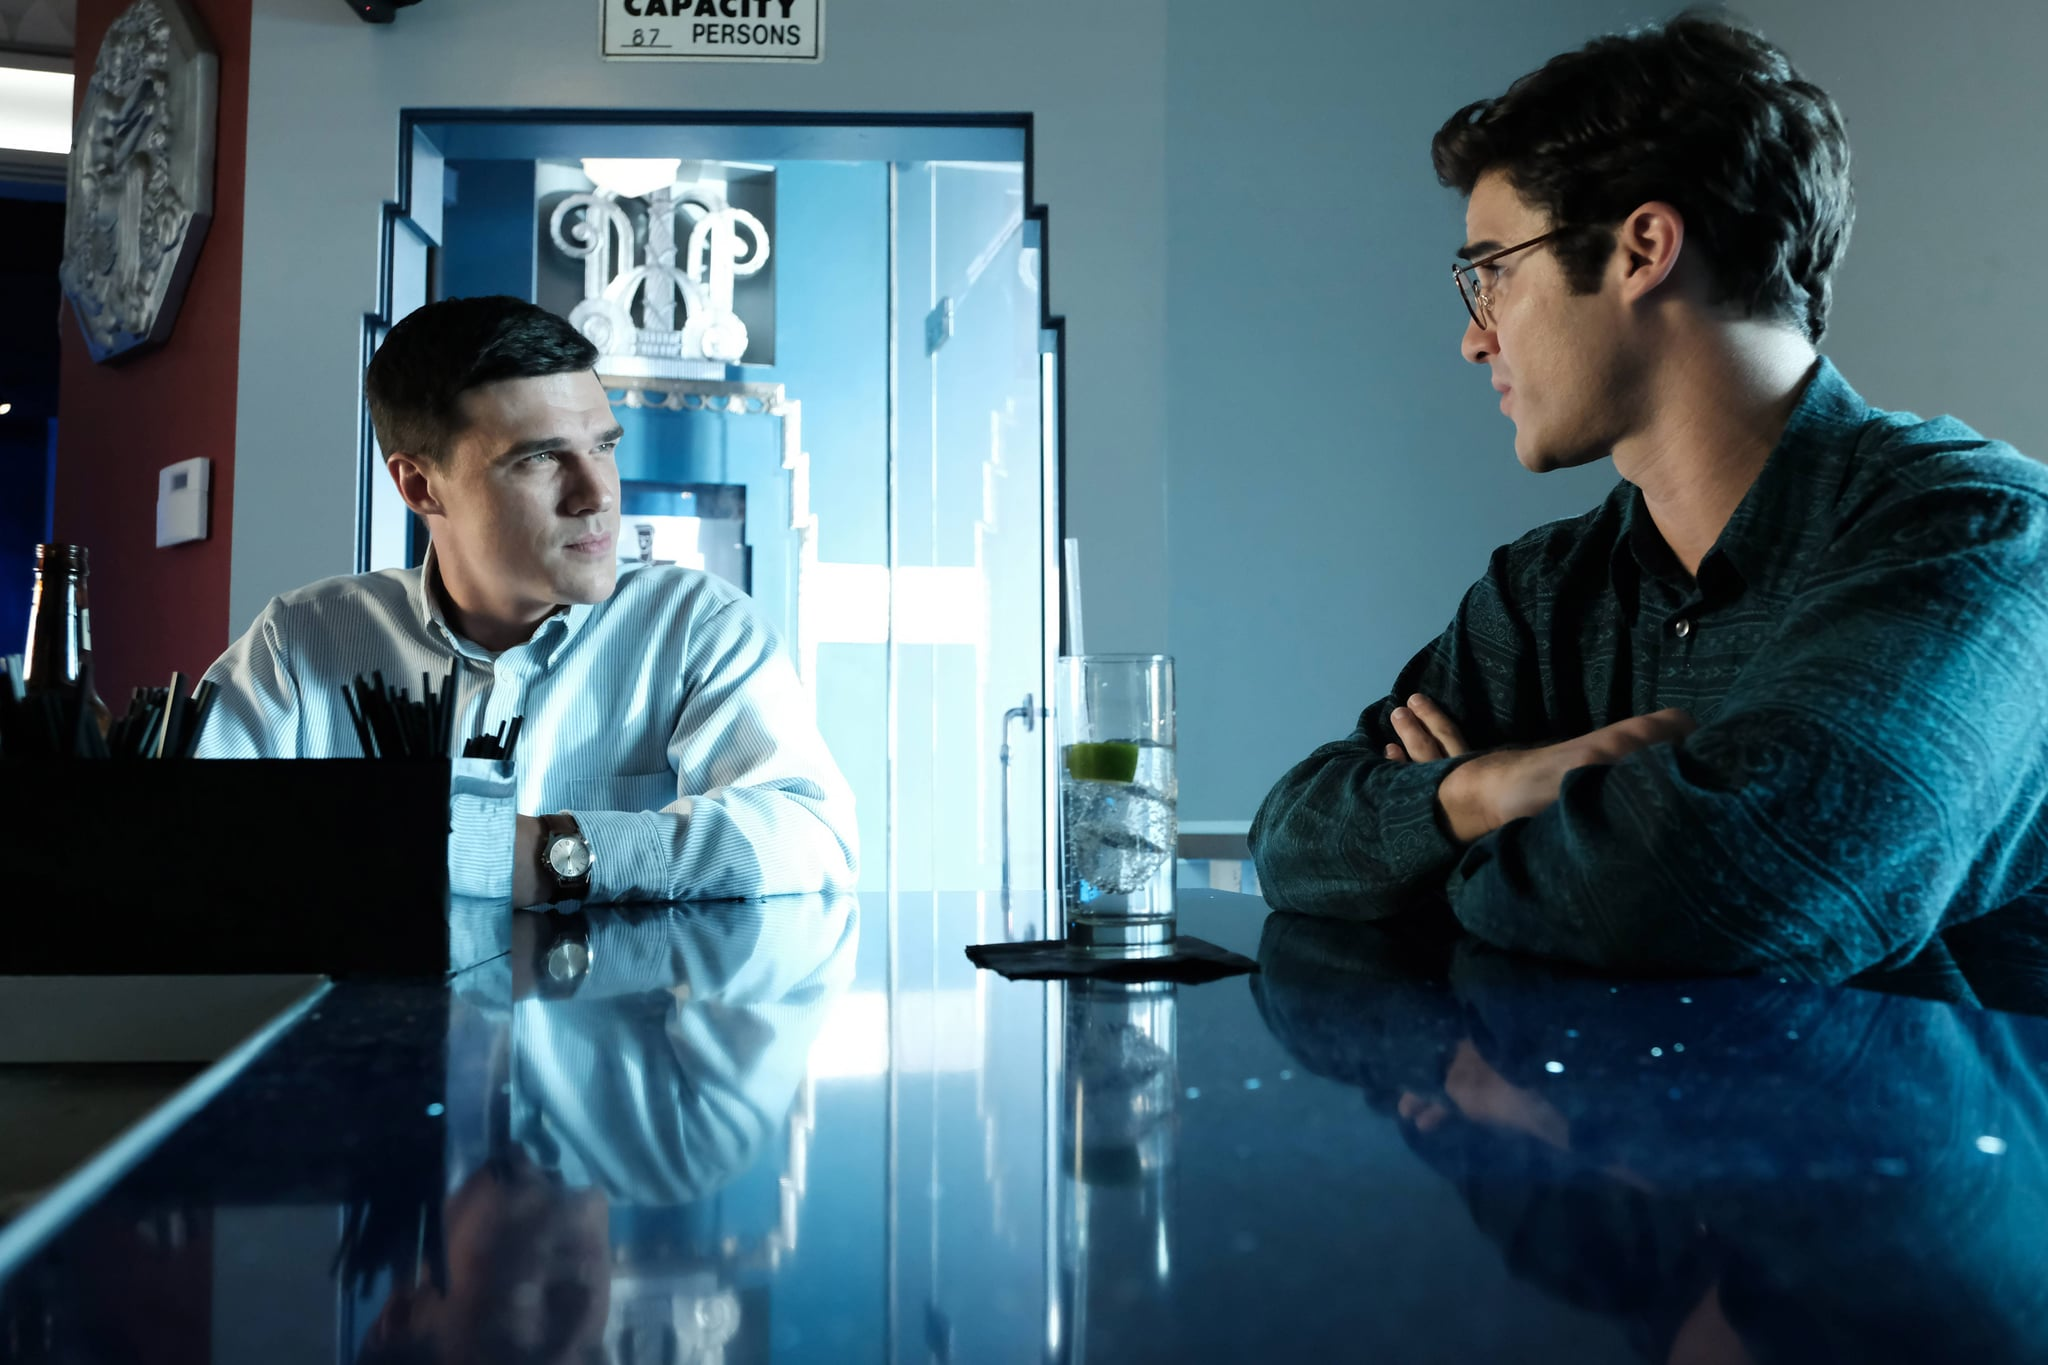 THE ASSASSINATION OF GIANNI VERSACE: AMERICAN CRIME STORY (aka AMERICAN CRIME STORY), from left: Finn Wittrock (as Jeffrey Trail), Darren Criss (as Andrew Cunanan), 'Don't Ask, Don't Tell', (Season 2, ep. 205, aired Feb. 14, 2018). photo: Ray Mickshaw / FX / Courtesy: Everett Collection